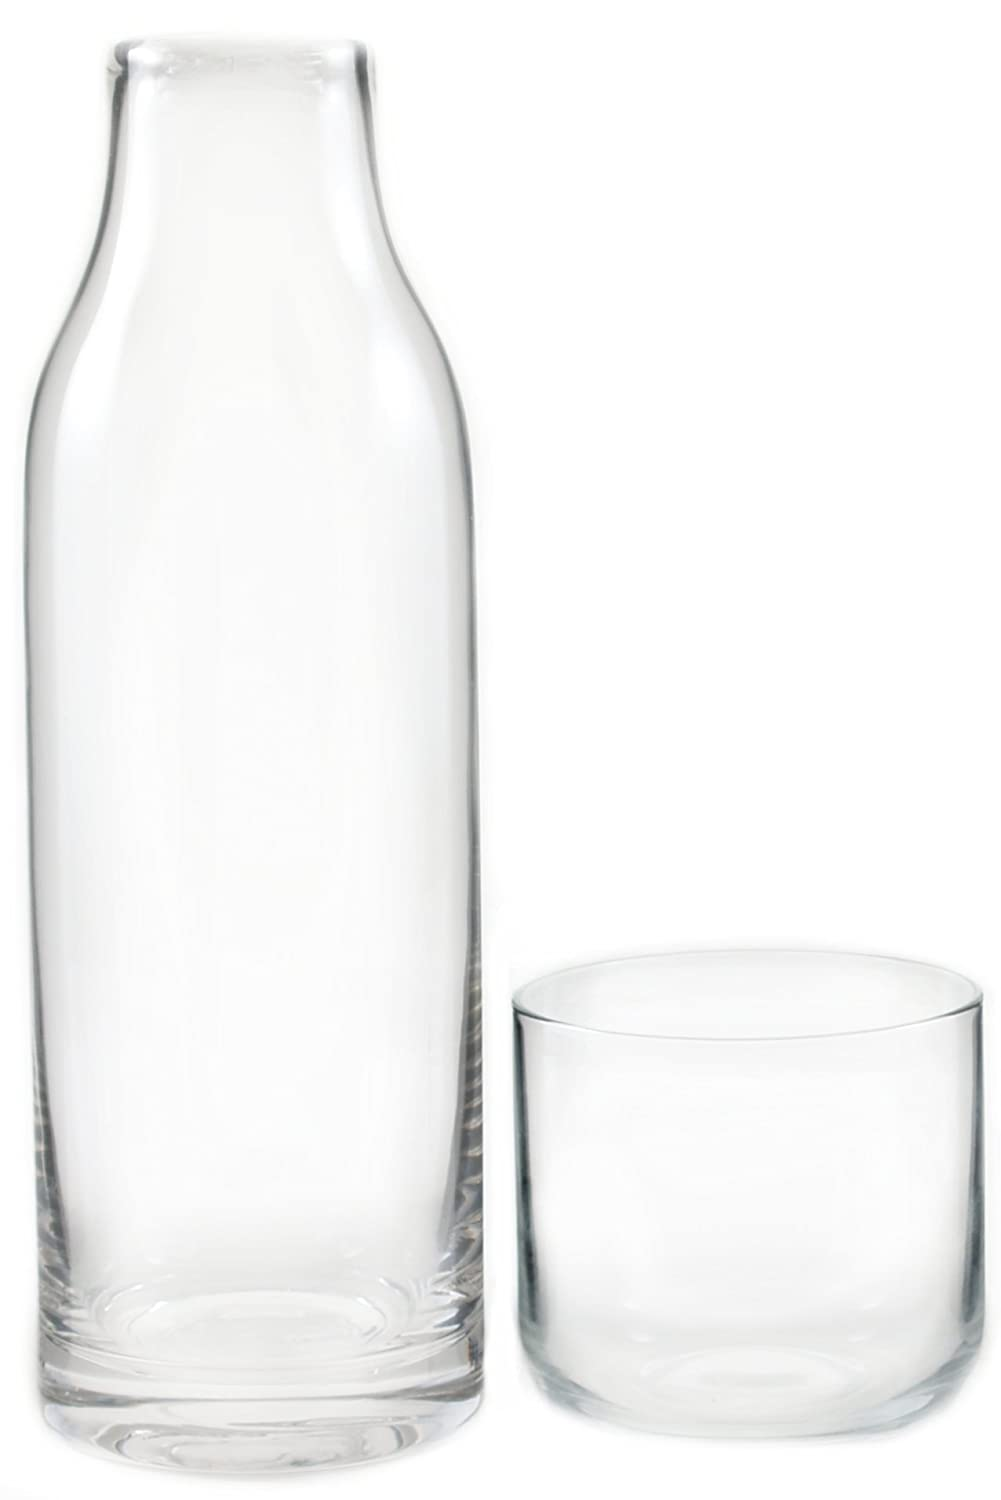 Amazon  Finn Tall Glass Bedside Carafe With Cup, 28 Ounce: Bedside  Water Carafe: Carafes & Pitchers